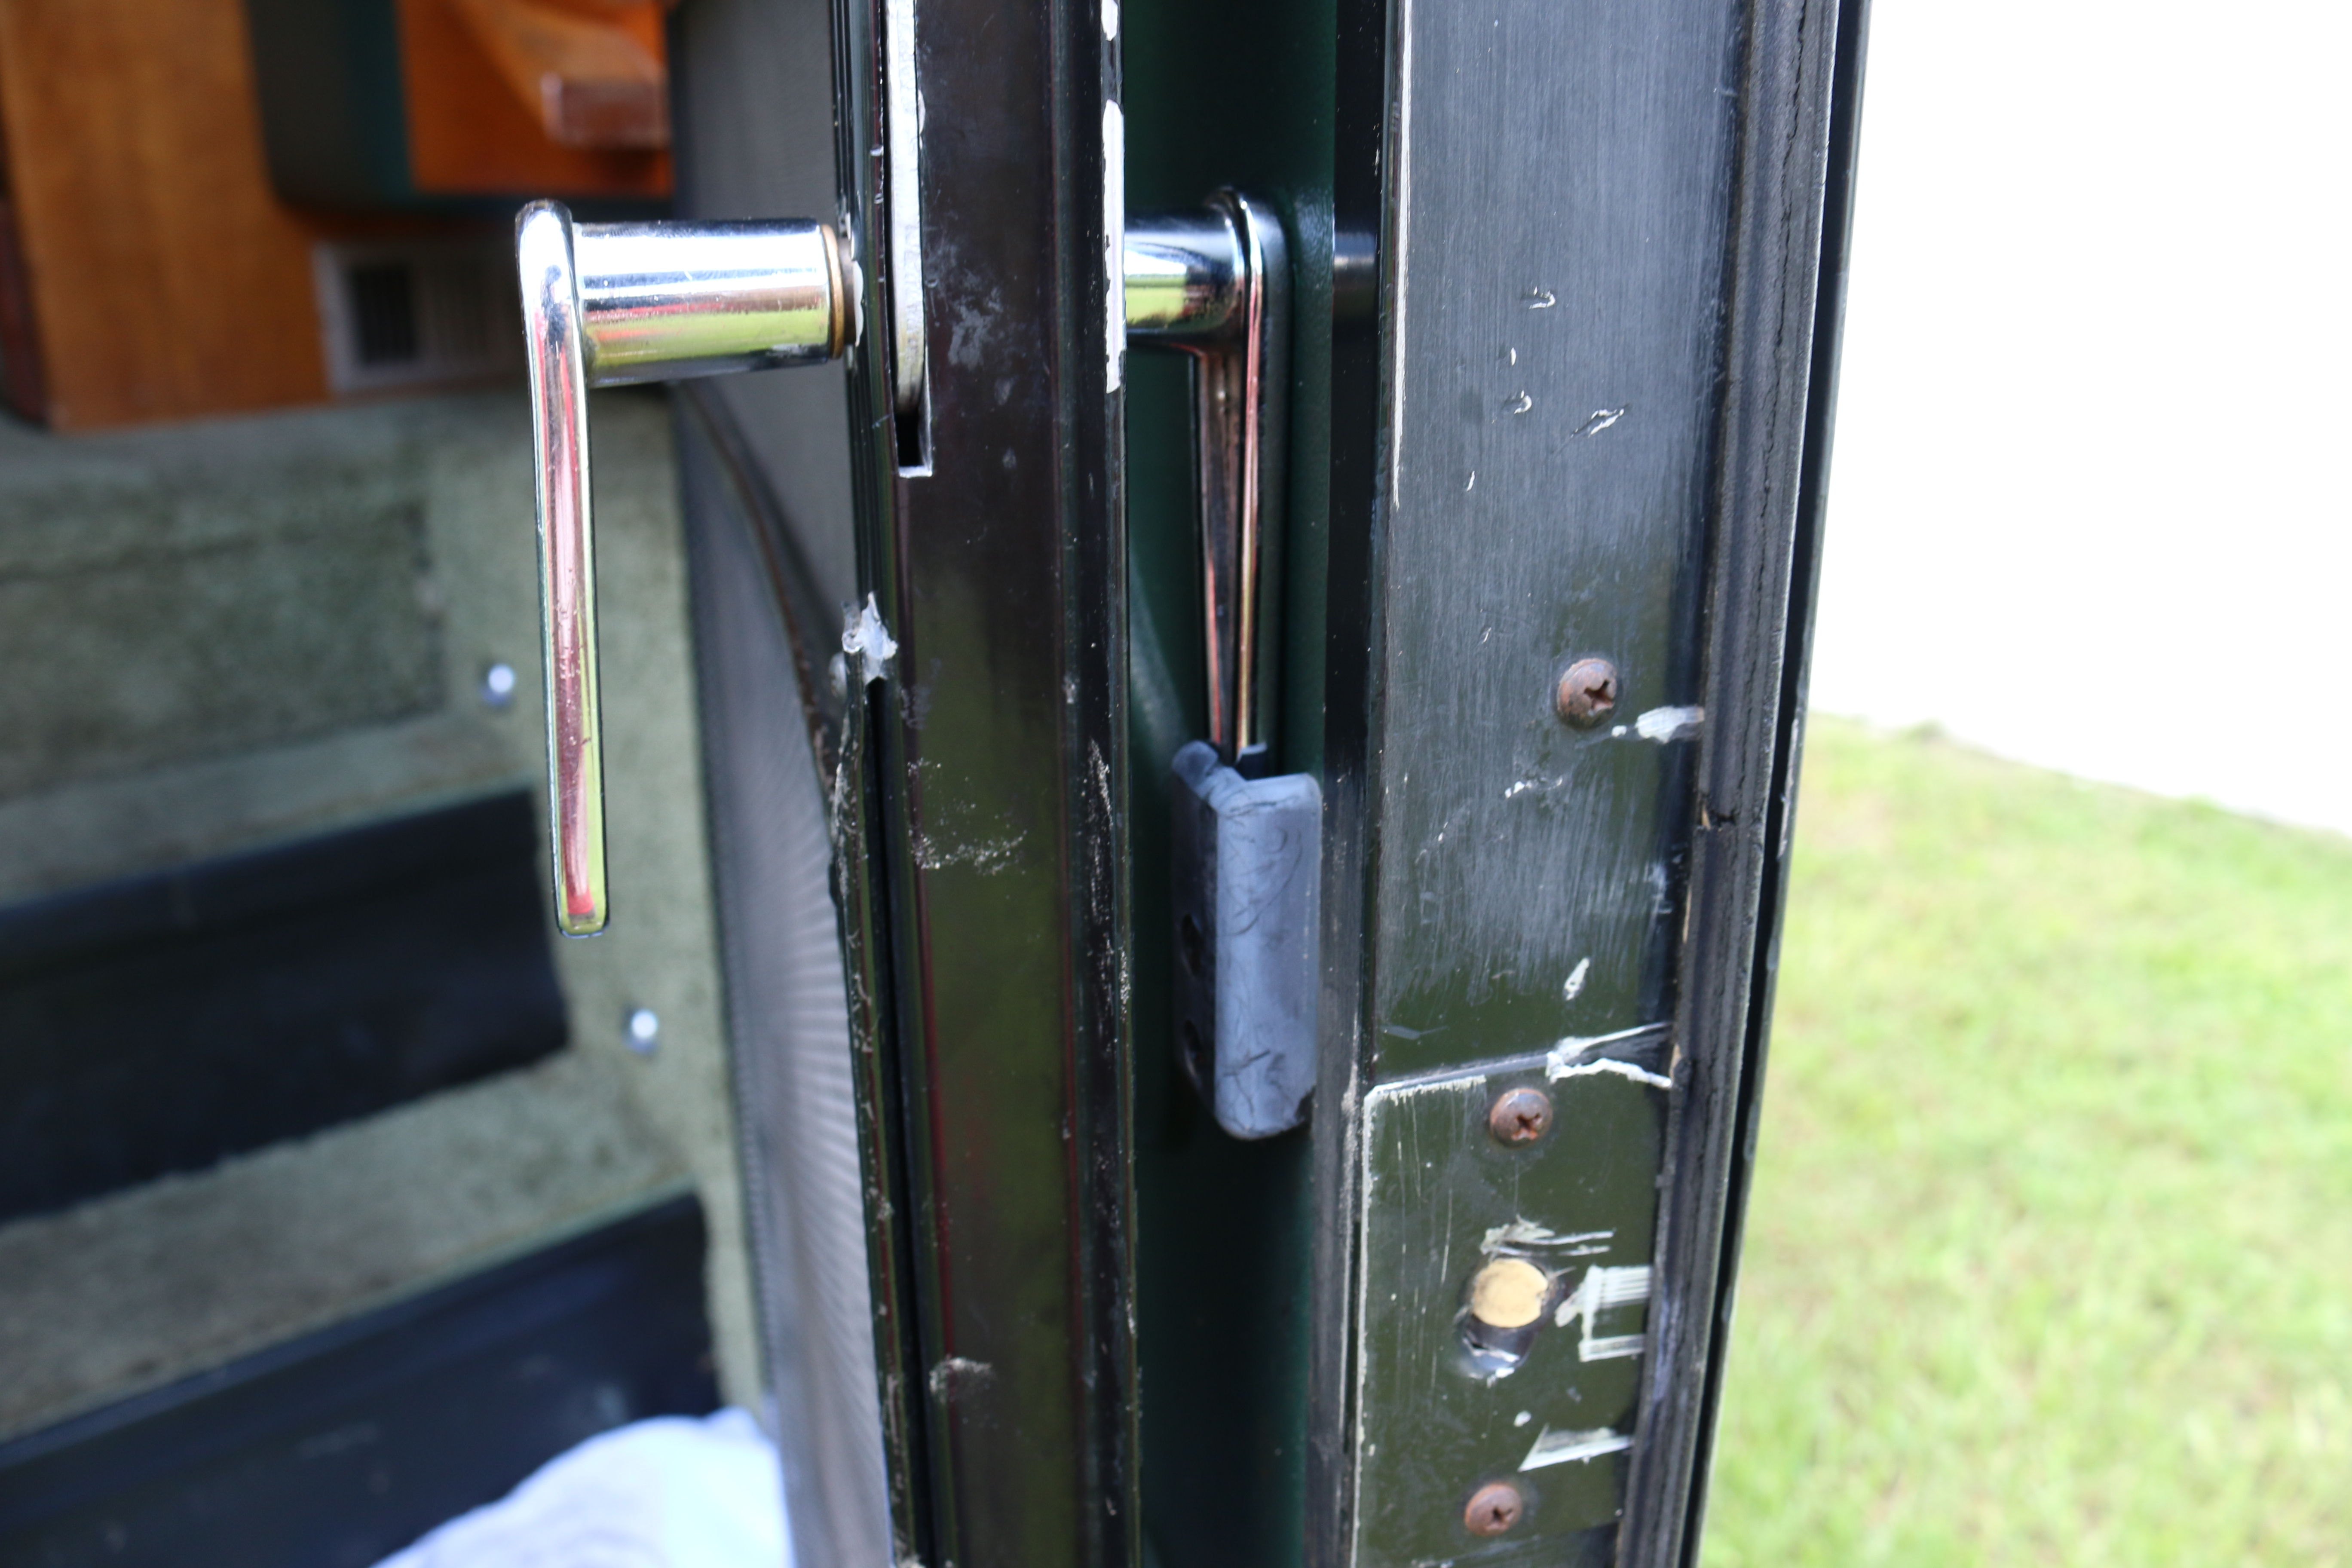 The Screen Door Latch On Our 1999 Monaco Dynasty Leaves A Little To Be  Desired. Itu0027s A Simple Twist And Lock Mechanism Without Springs Or  Retention.